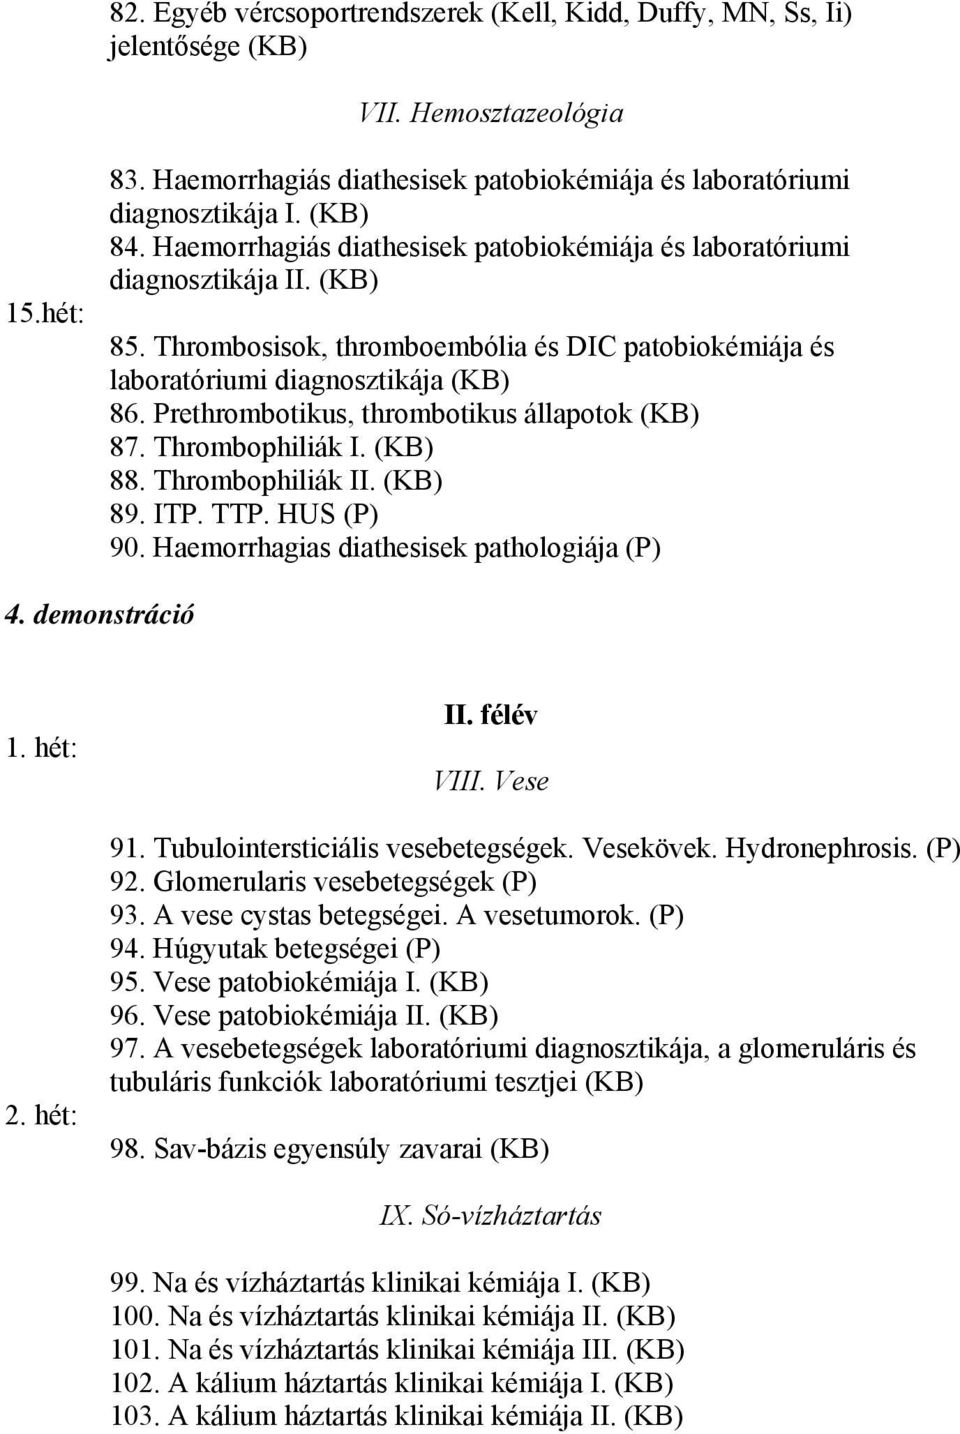 Prethrombotikus, thrombotikus állapotok (KB) 87. Thrombophiliák I. (KB) 88. Thrombophiliák II. (KB) 89. ITP. TTP. HUS (P) 90. Haemorrhagias diathesisek pathologiája (P) 4. demonstráció 1. hét: 2.